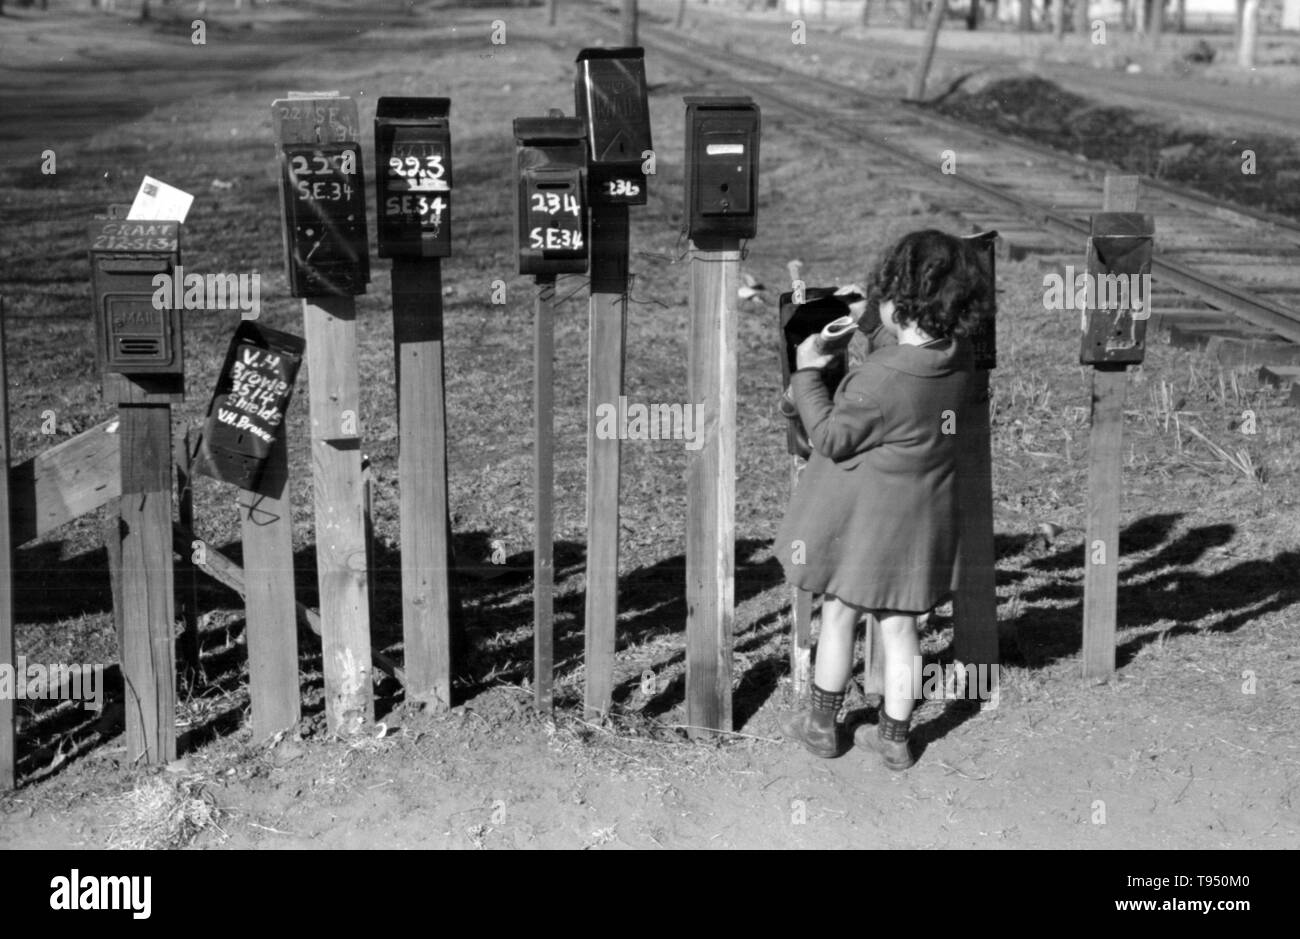 """Entitled: """"Little girl getting the mail from box, suburb of Oklahoma City, Oklahoma."""" Before the introduction of rural free delivery (RFD) by the Post Office in 1896, many rural residents had no access to the mail unless they collected it at a post office located many miles from their homes or hired a private express company to deliver it. For this reason, mailboxes did not become popular in rural America until curbside RFD mail delivery by the Post Office was an established service. Stock Photo"""